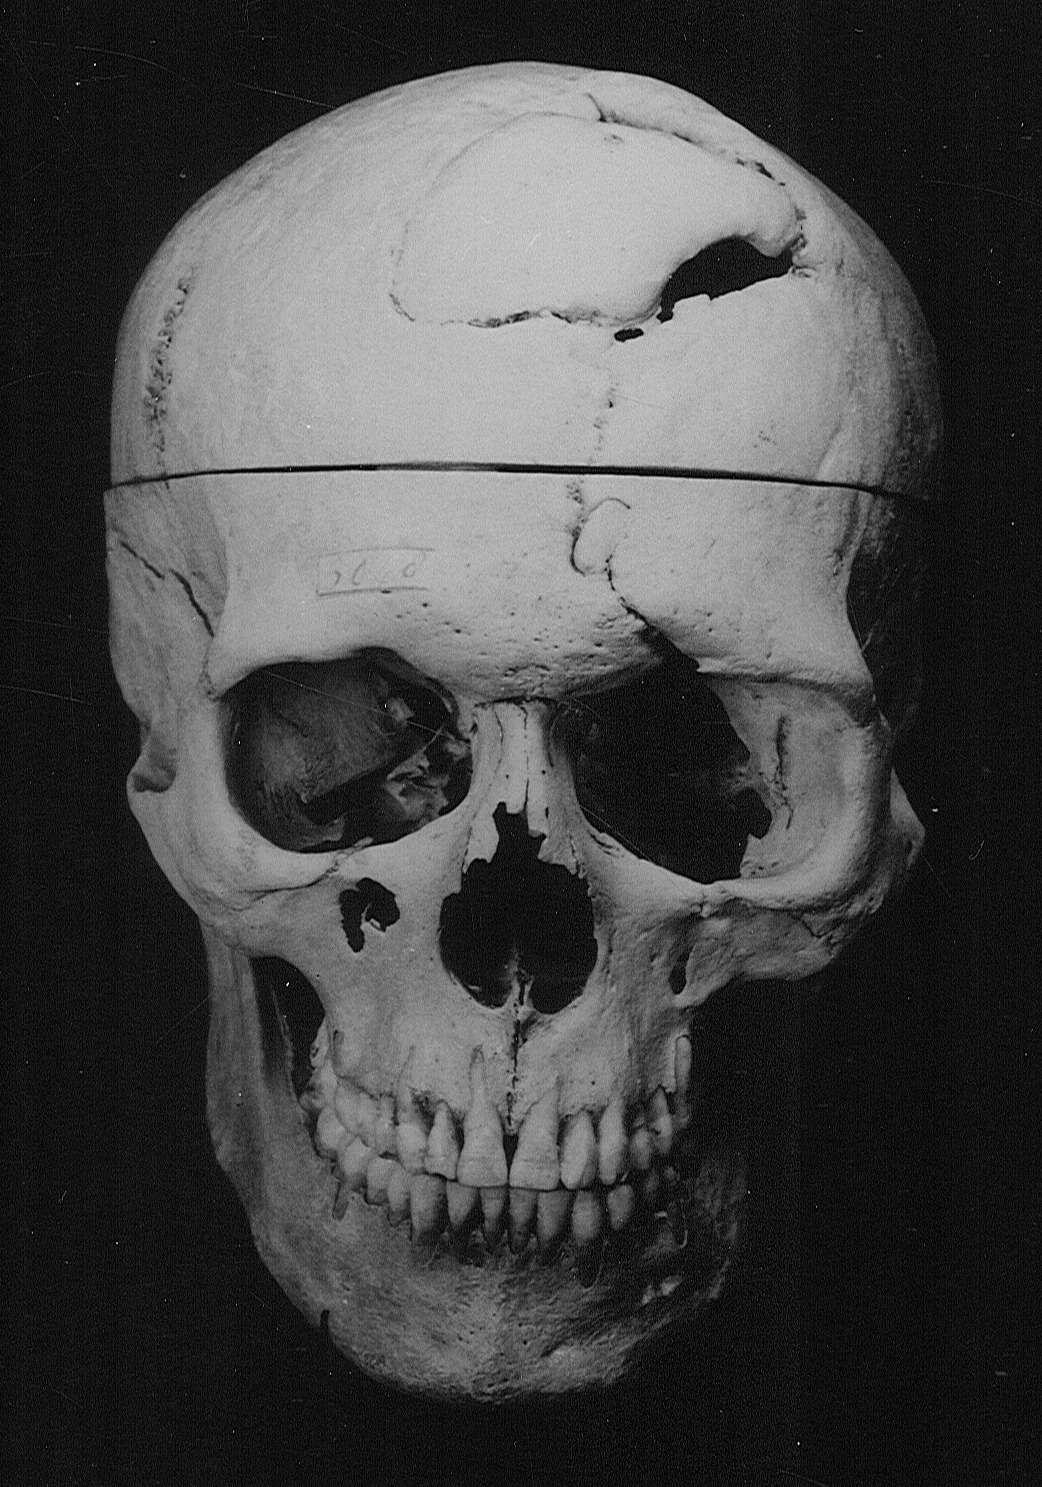 Skull of Phineas Gage, Warren Anatomical Museum in the Francis A. Countway Library of Medicine [WAM 00949]